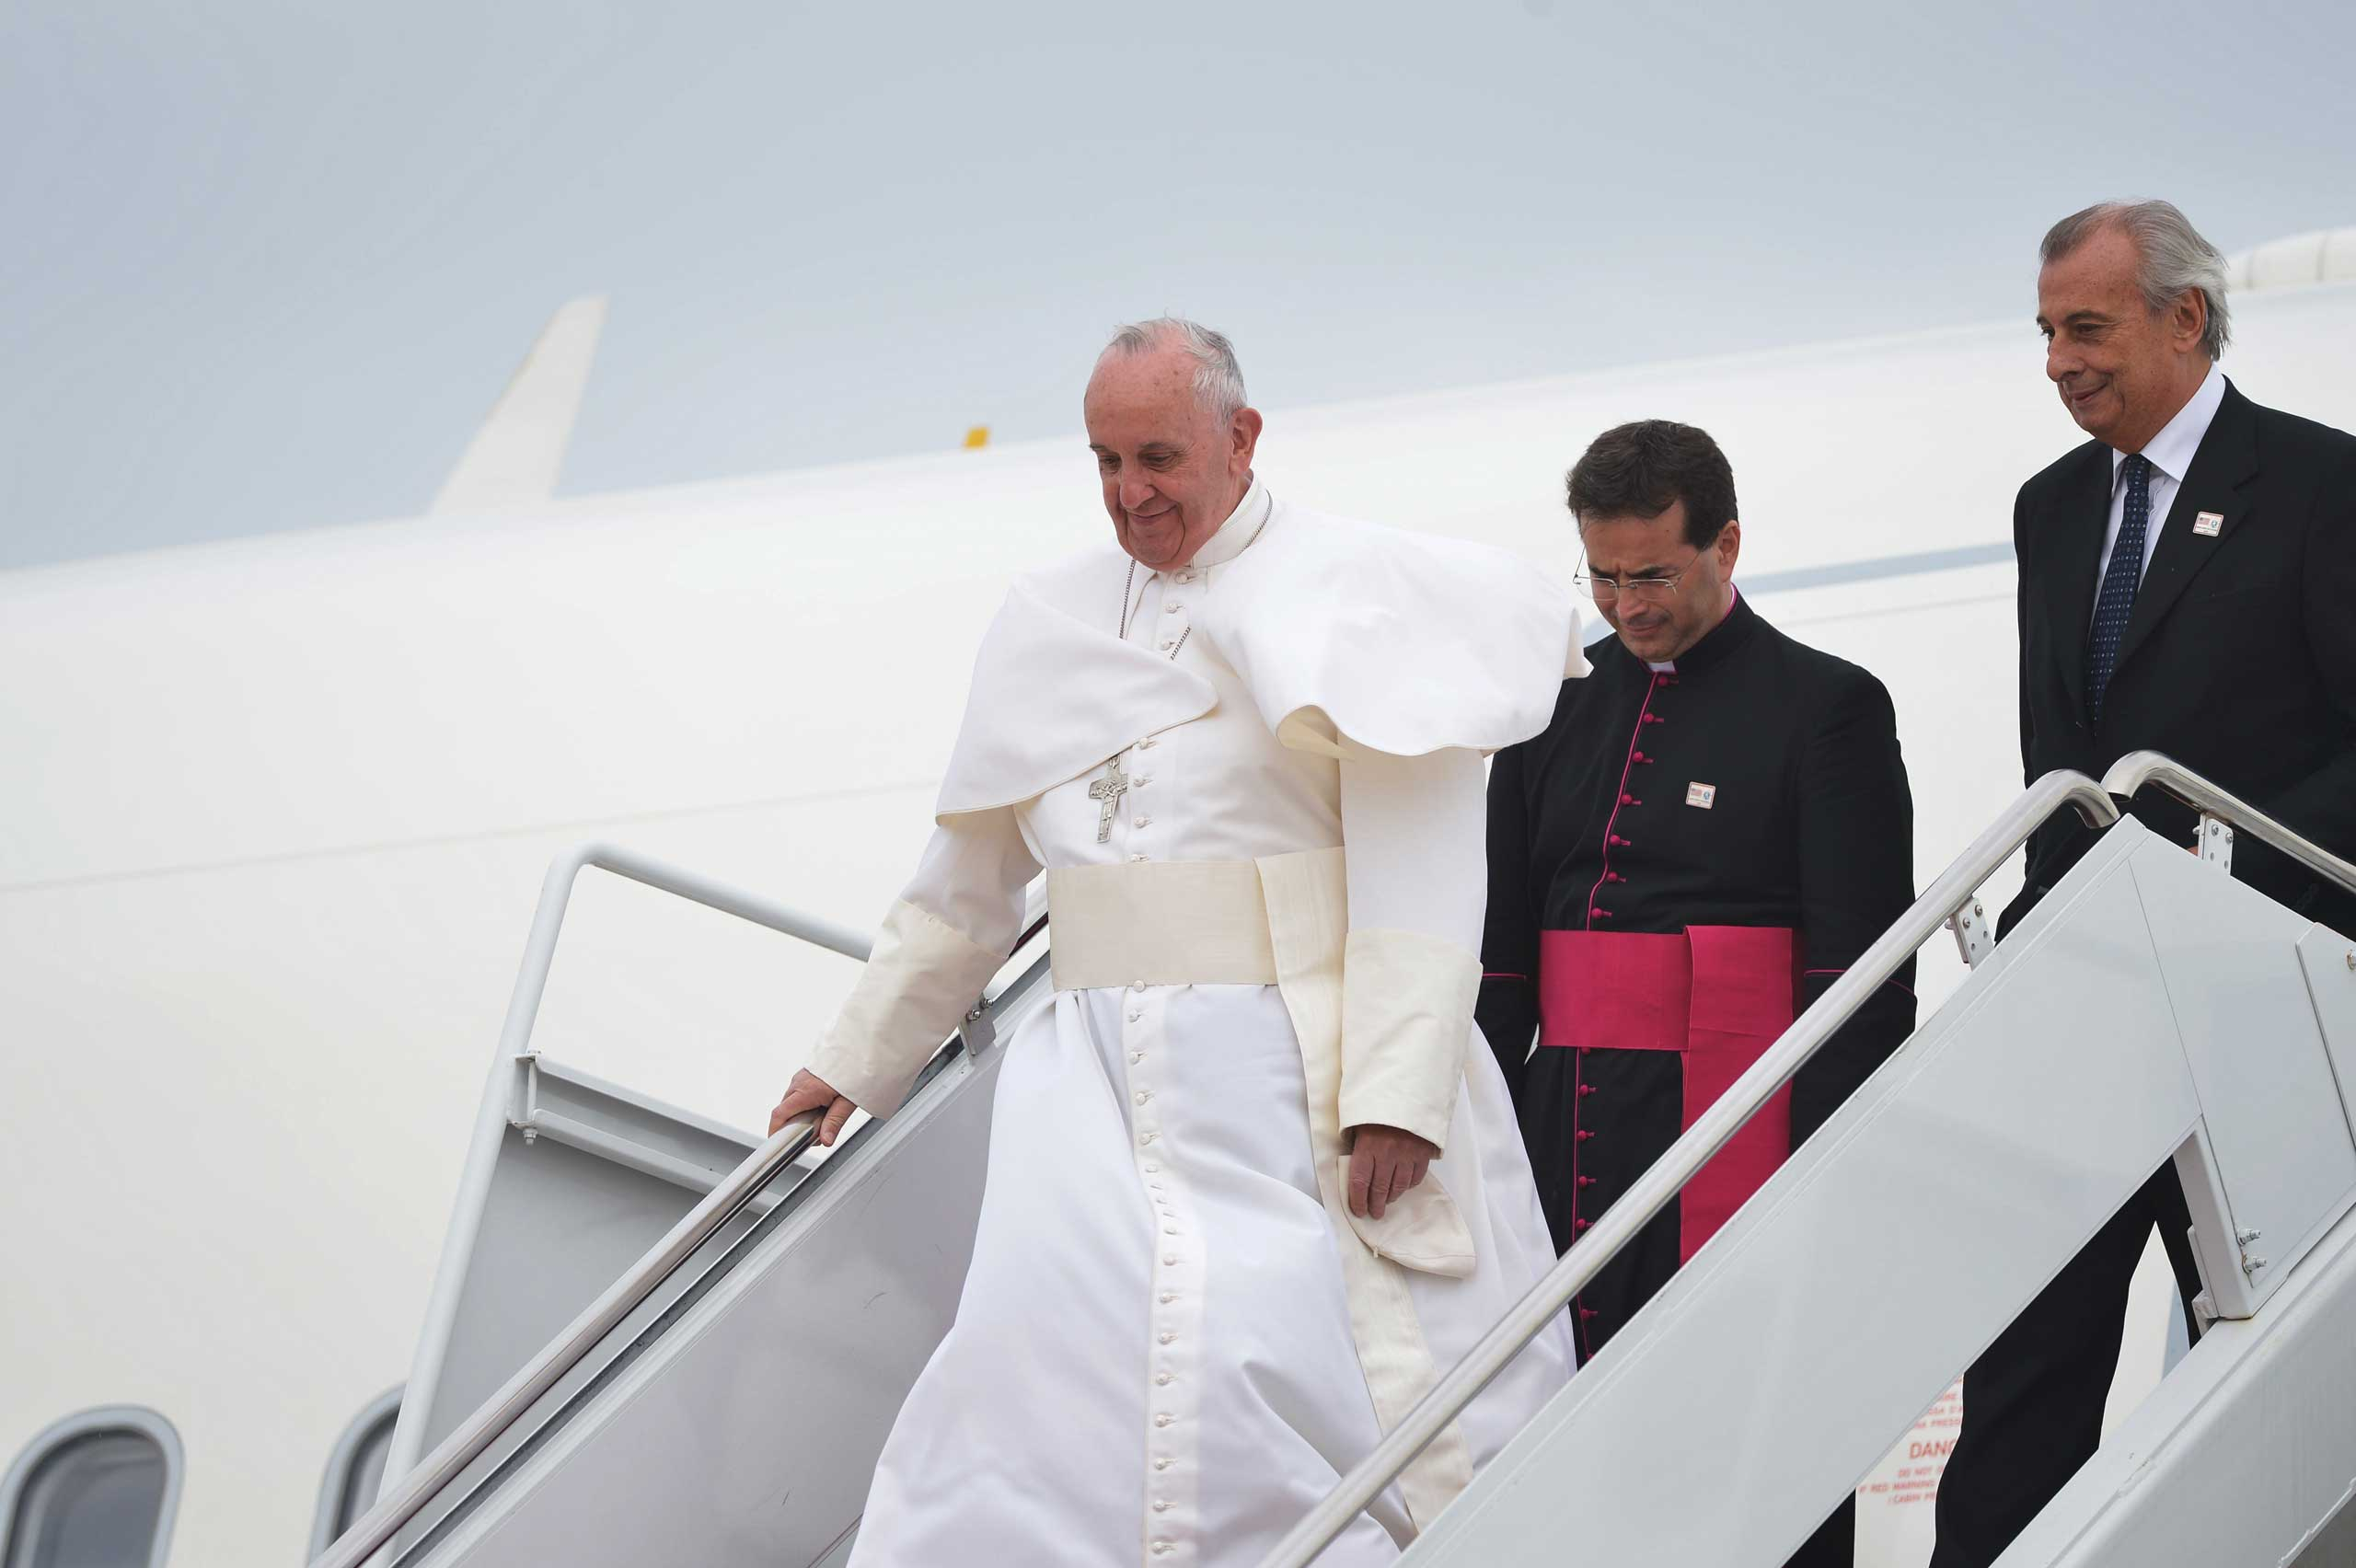 Pope Francis steps off his plane at Andrews Air Force Base in Md., on Sept. 22, 2015.